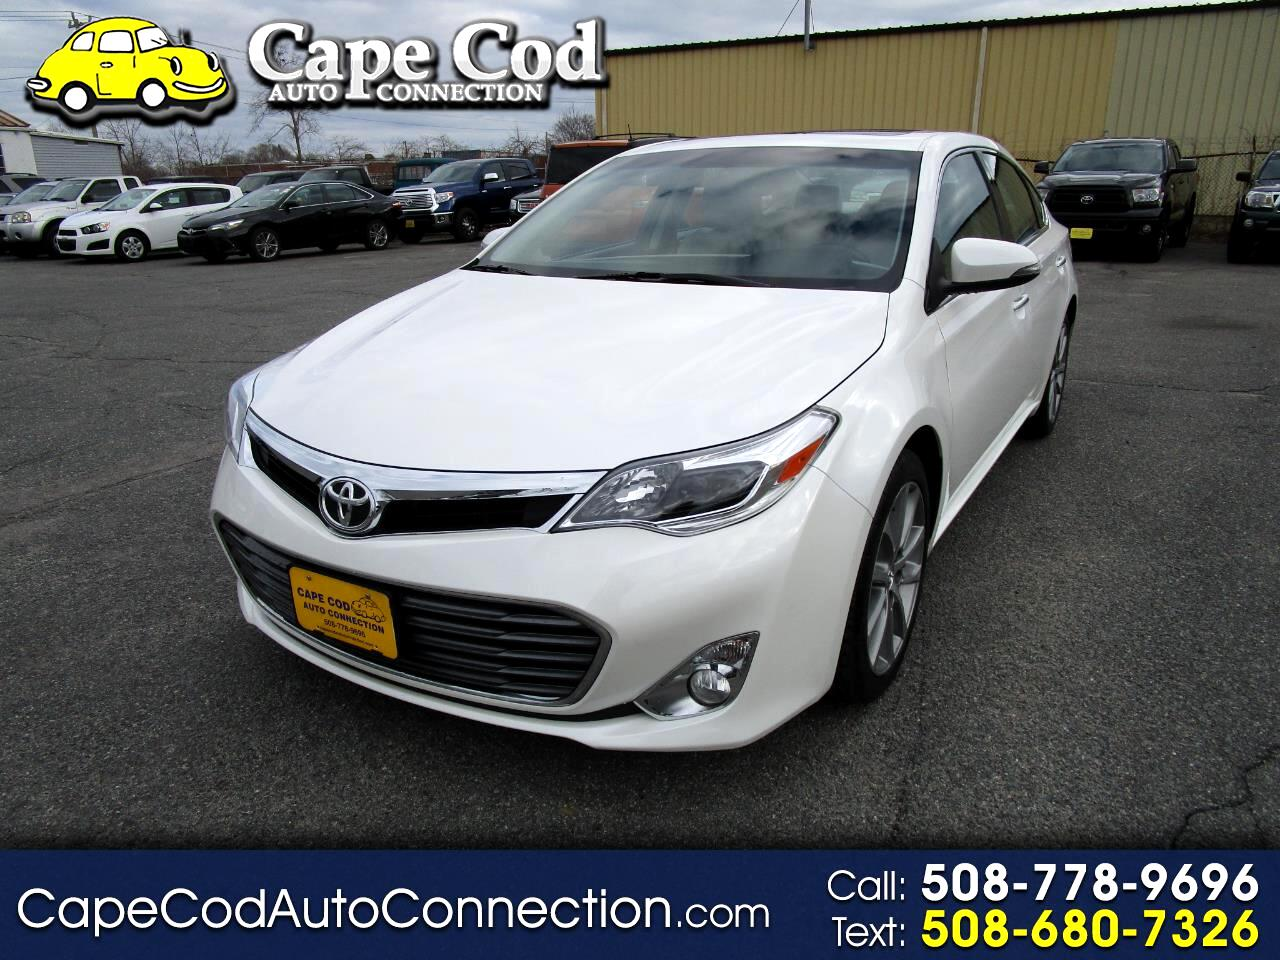 2015 Toyota Avalon 4dr Sdn XLE Touring (Natl)